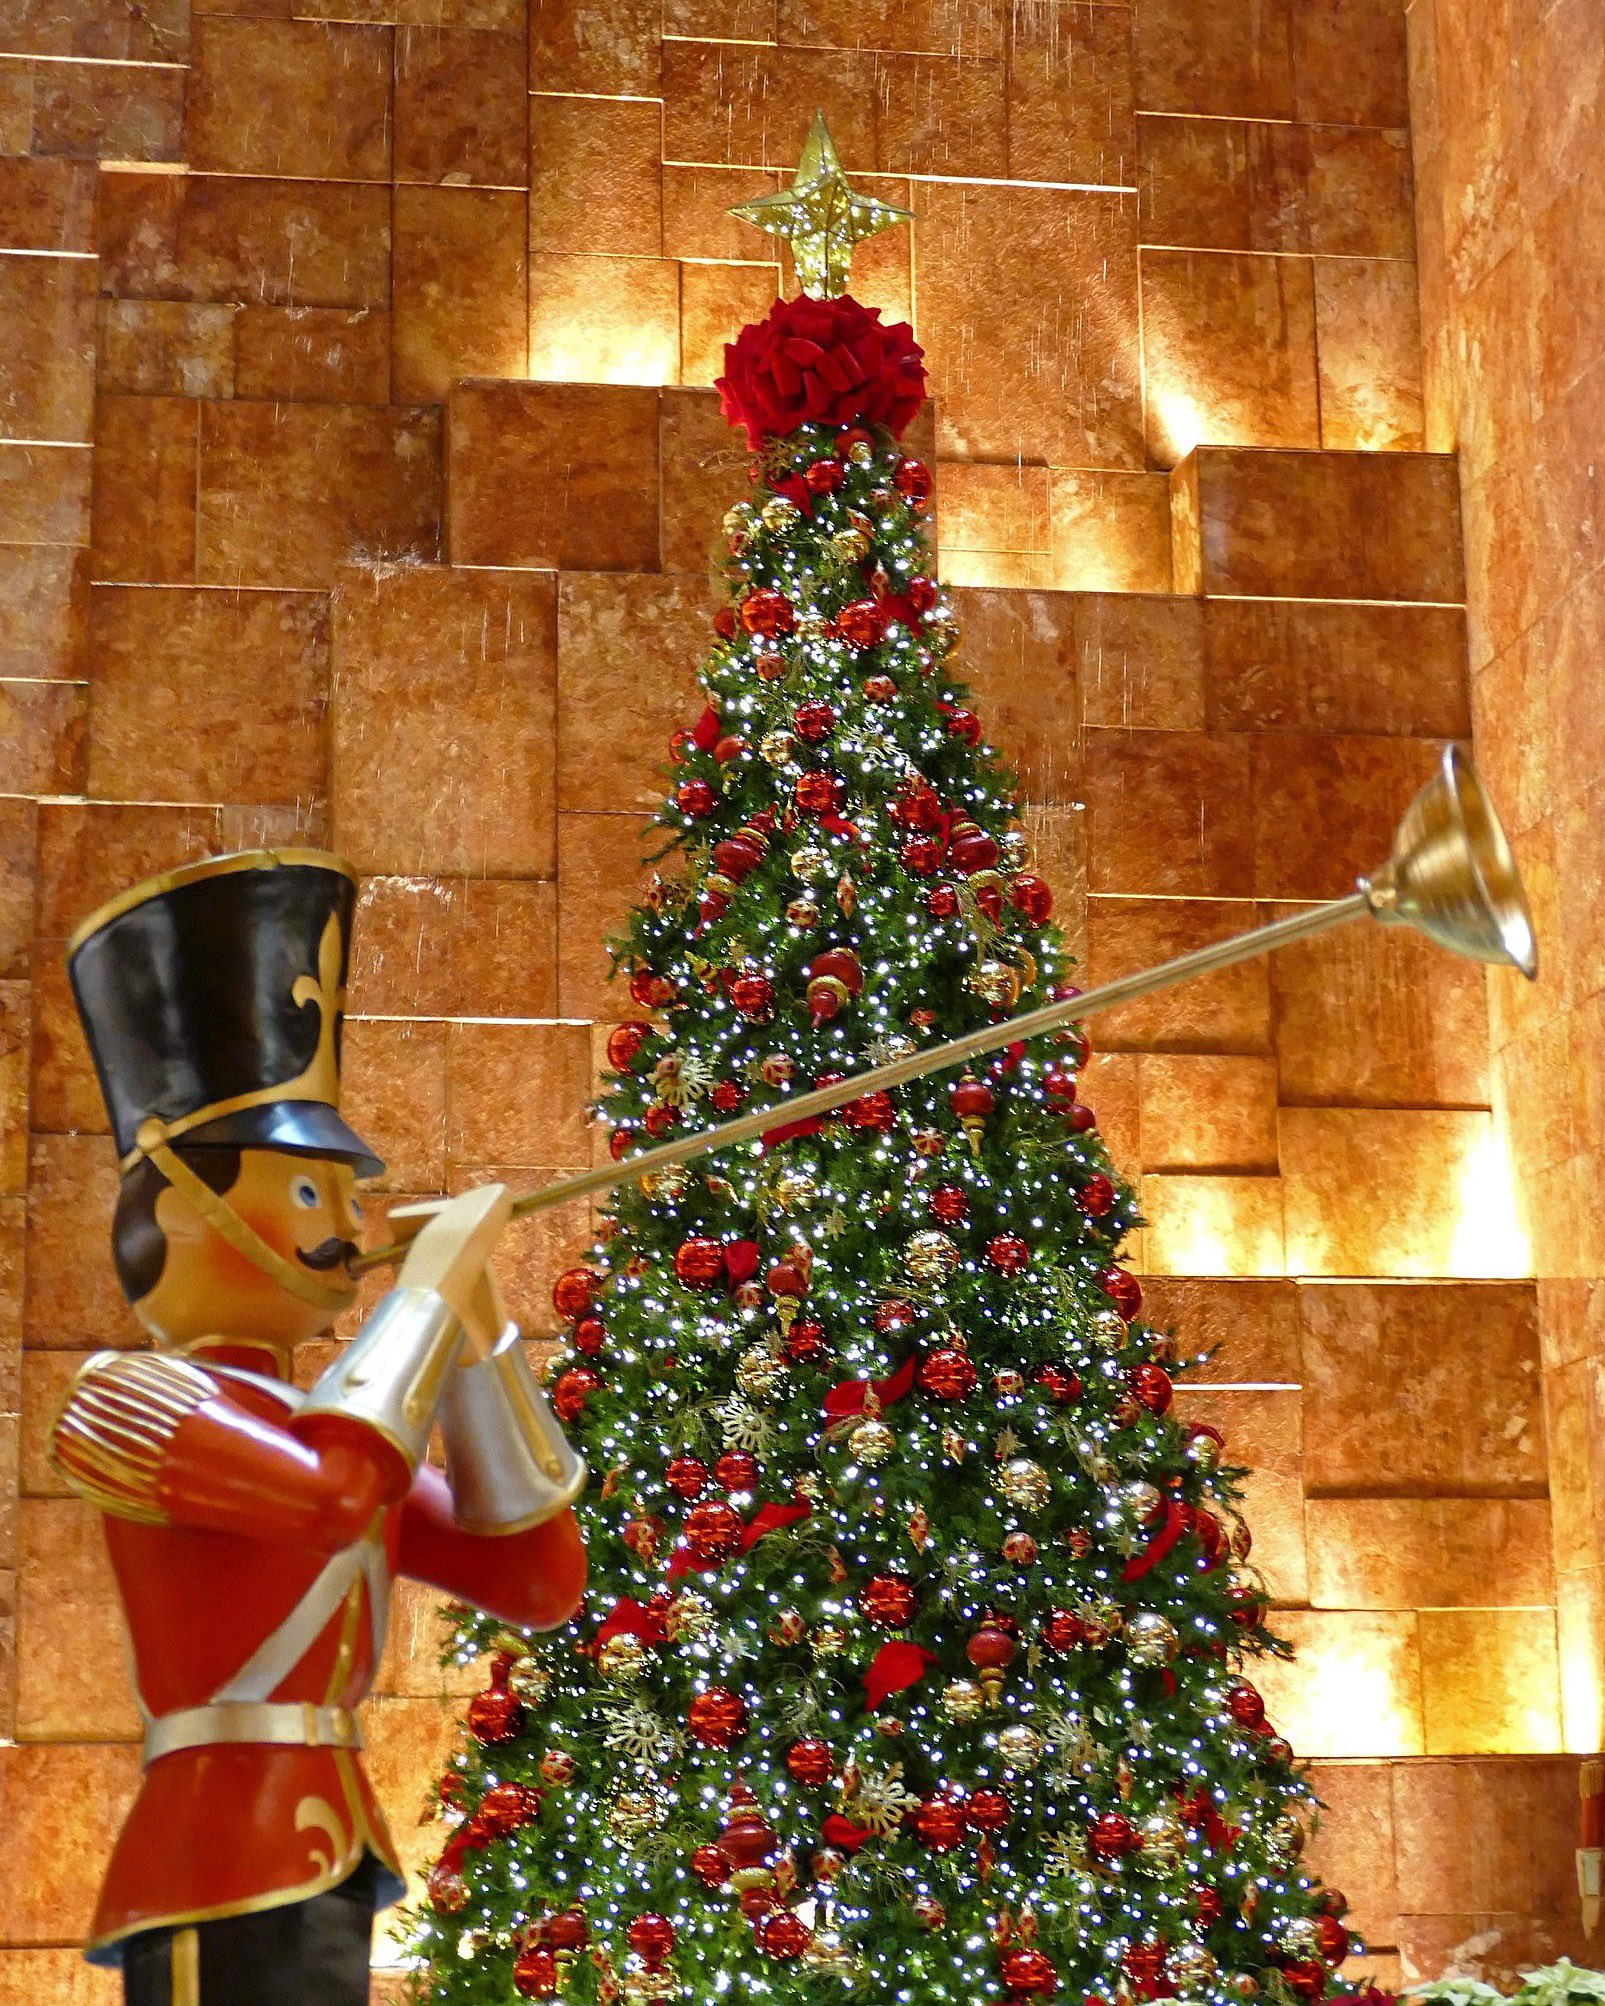 It is officially Christmas at @TrumpTower New York �� https://t.co/OlviF5BK17 https://t.co/9kK09eMtMR